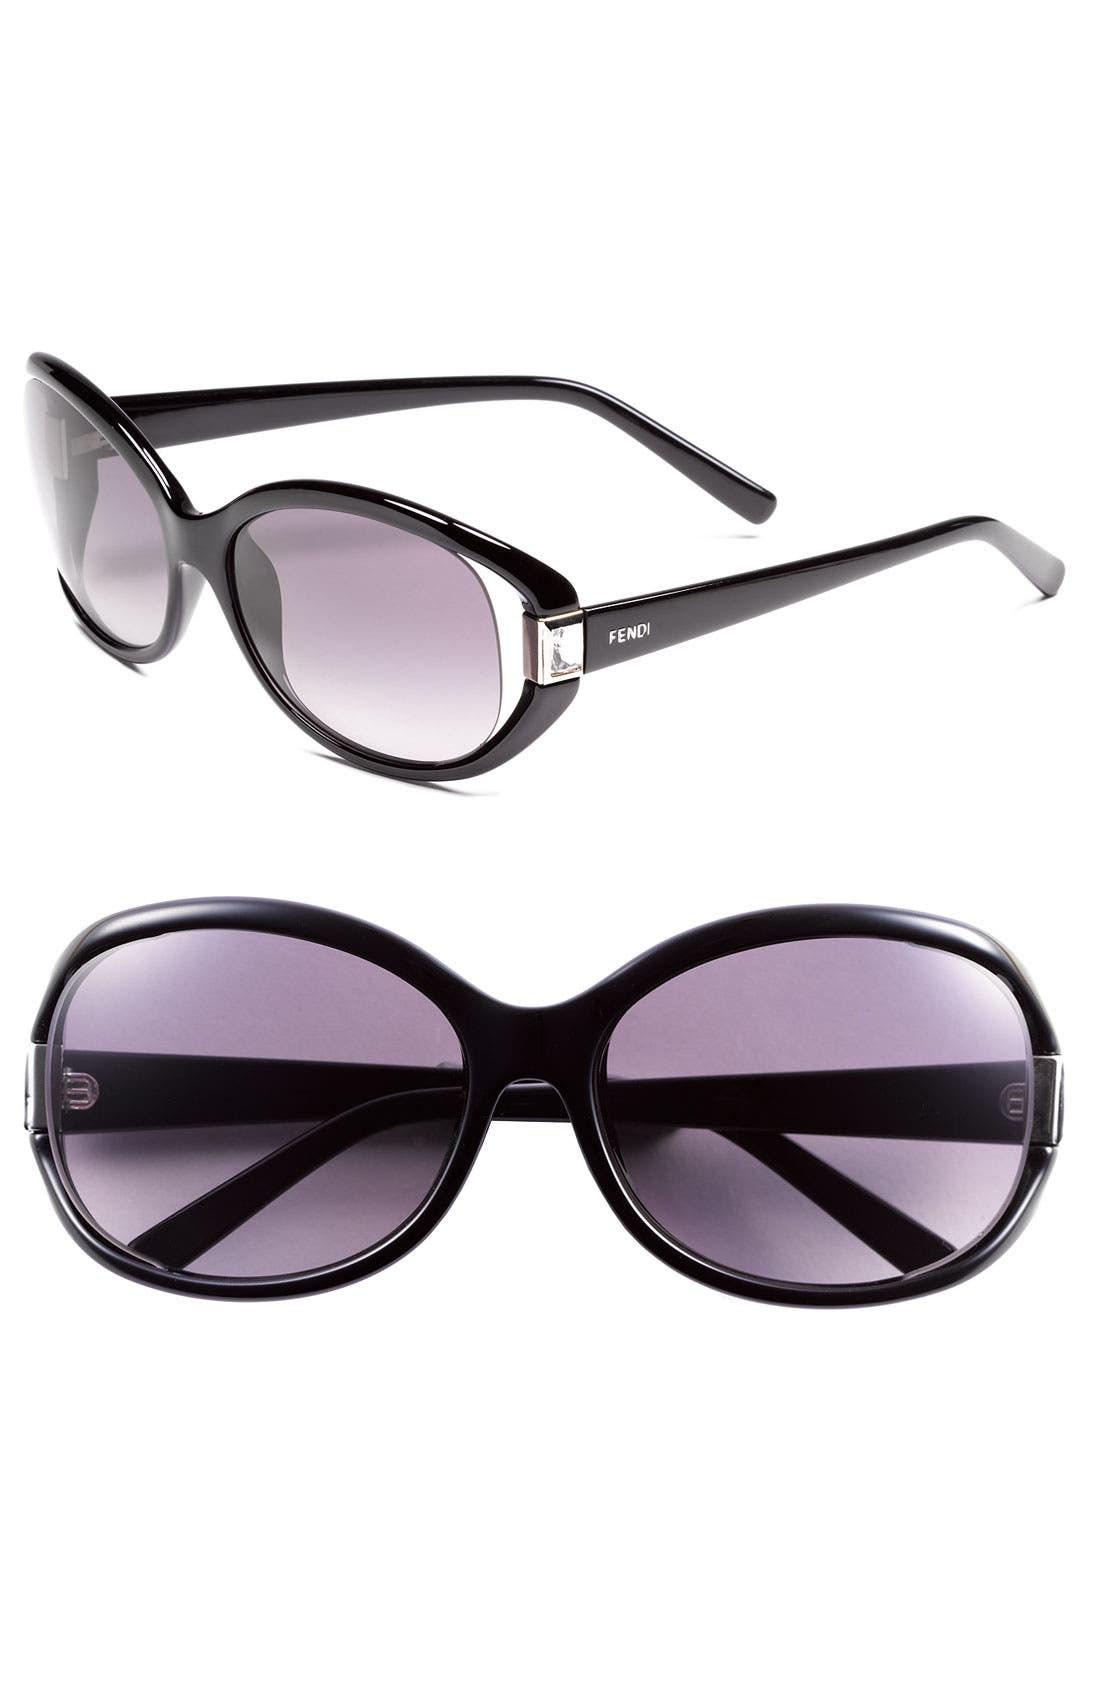 Main Image - Fendi Sunglasses